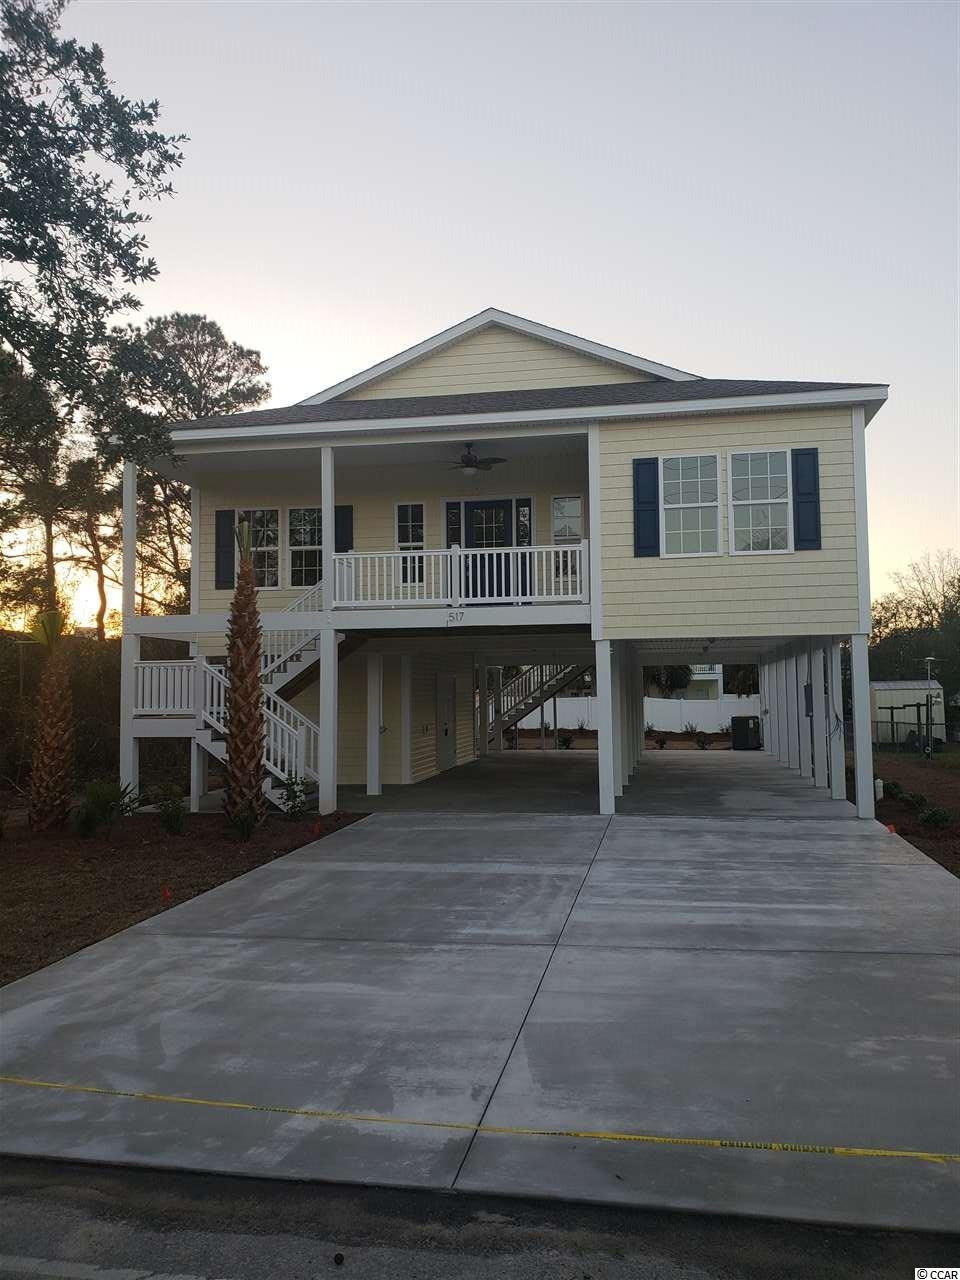 4BR / 3BA new raised beach style home east of Hwy 17 in NMB. Home features 9 & 10' ceilings, crown molding, custom kitchen with granite and stainless appliances. Master suite has his and her sinks and closets, full tile shower. Ceiling fans and wood floors throughout. Fully landscaped yard with concrete driveway.